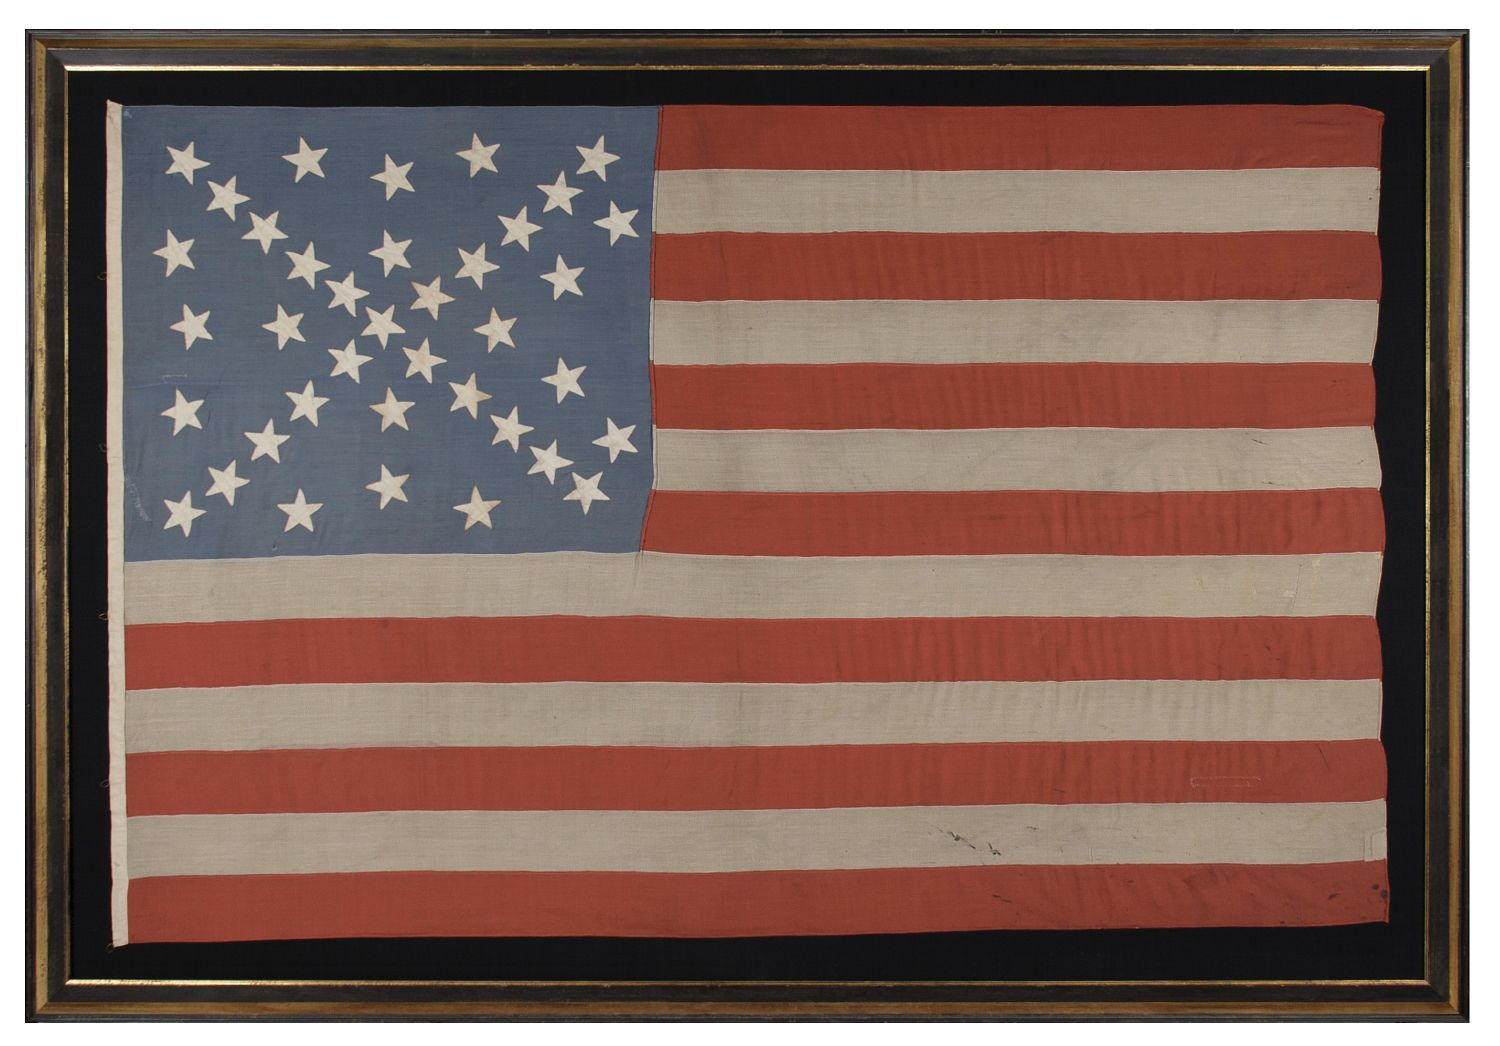 38 Stars In A Dynamic Starburst Cross One Of The Most Spectacular Star Configurations In Flag Collecting On An Antique A American Antiques American Flag Flag